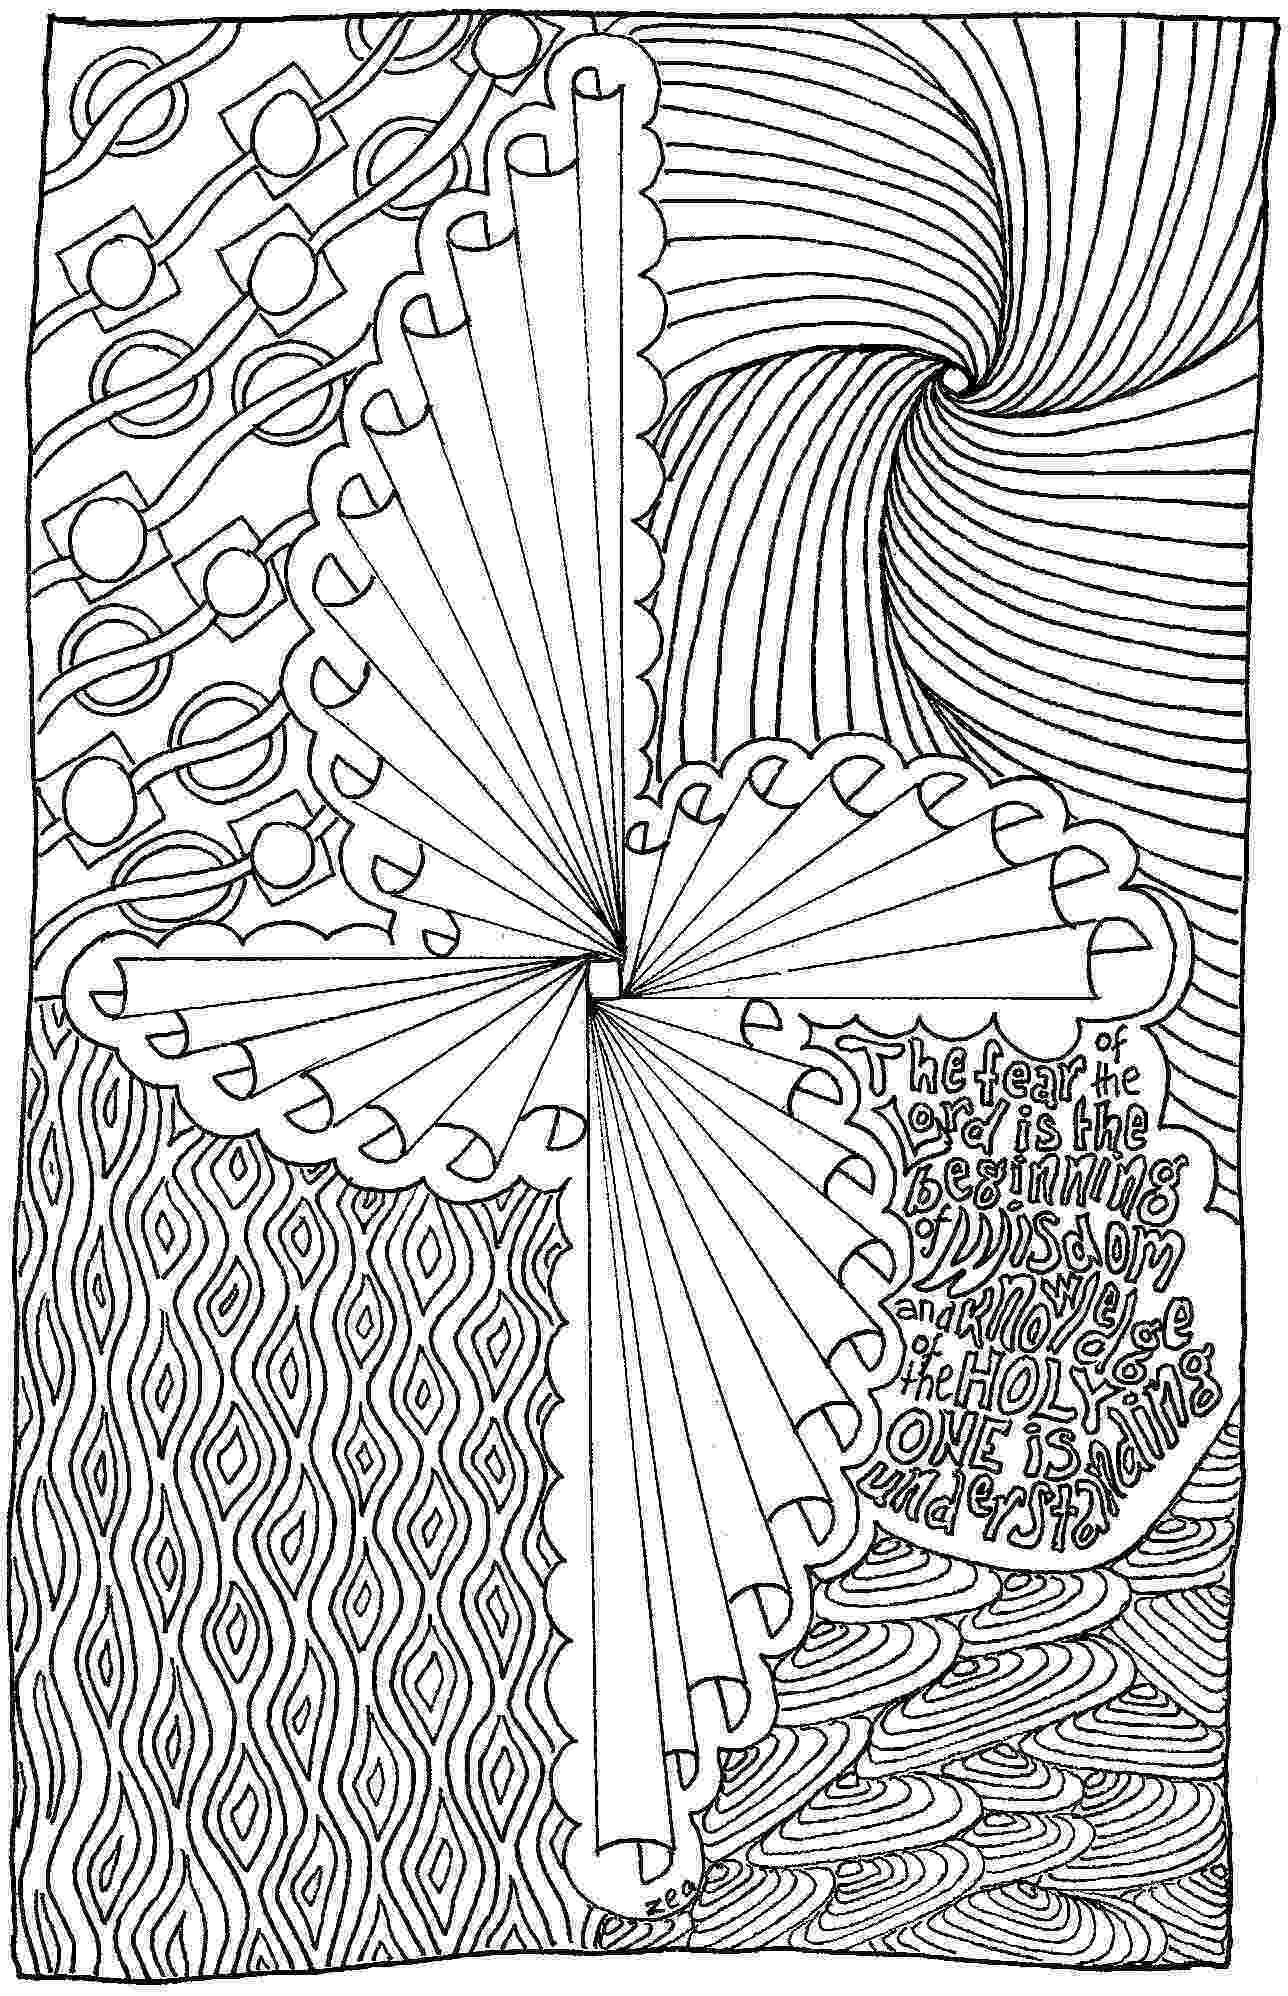 christian coloring pages for adults exodus bible study week 2 part 1 time warp wife adults coloring for christian pages